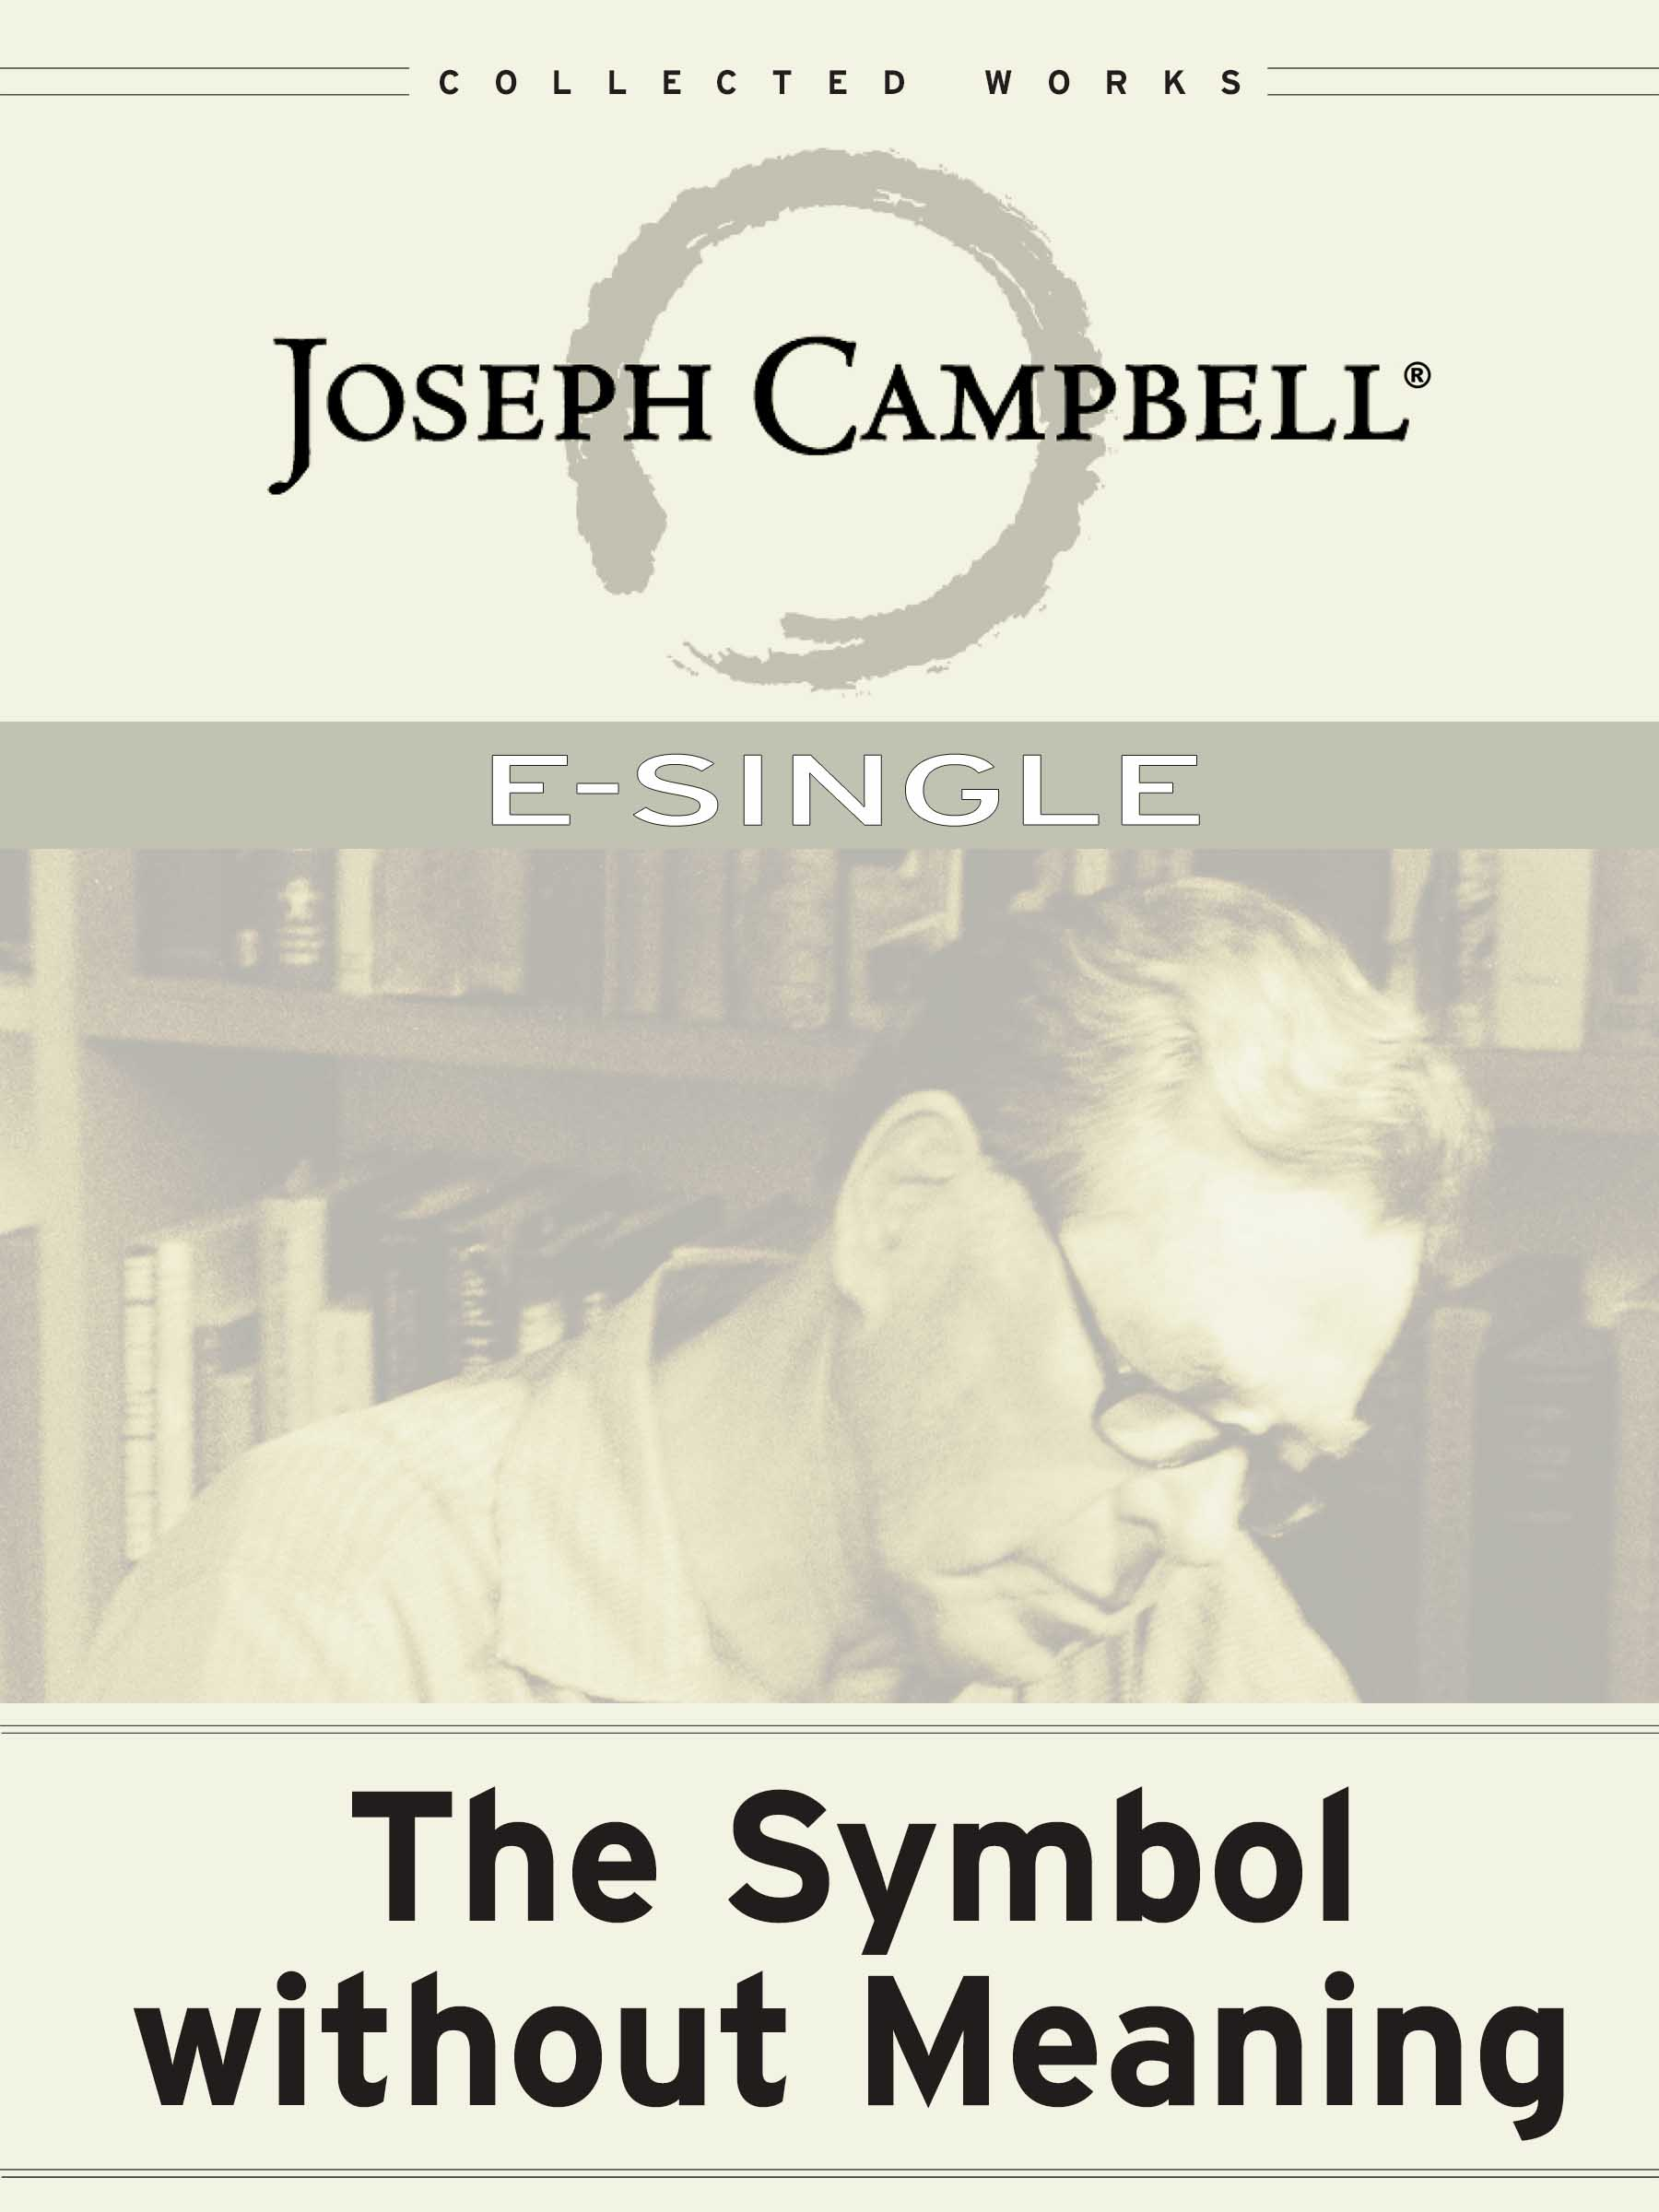 The Symbol without Meaning (Esingle)